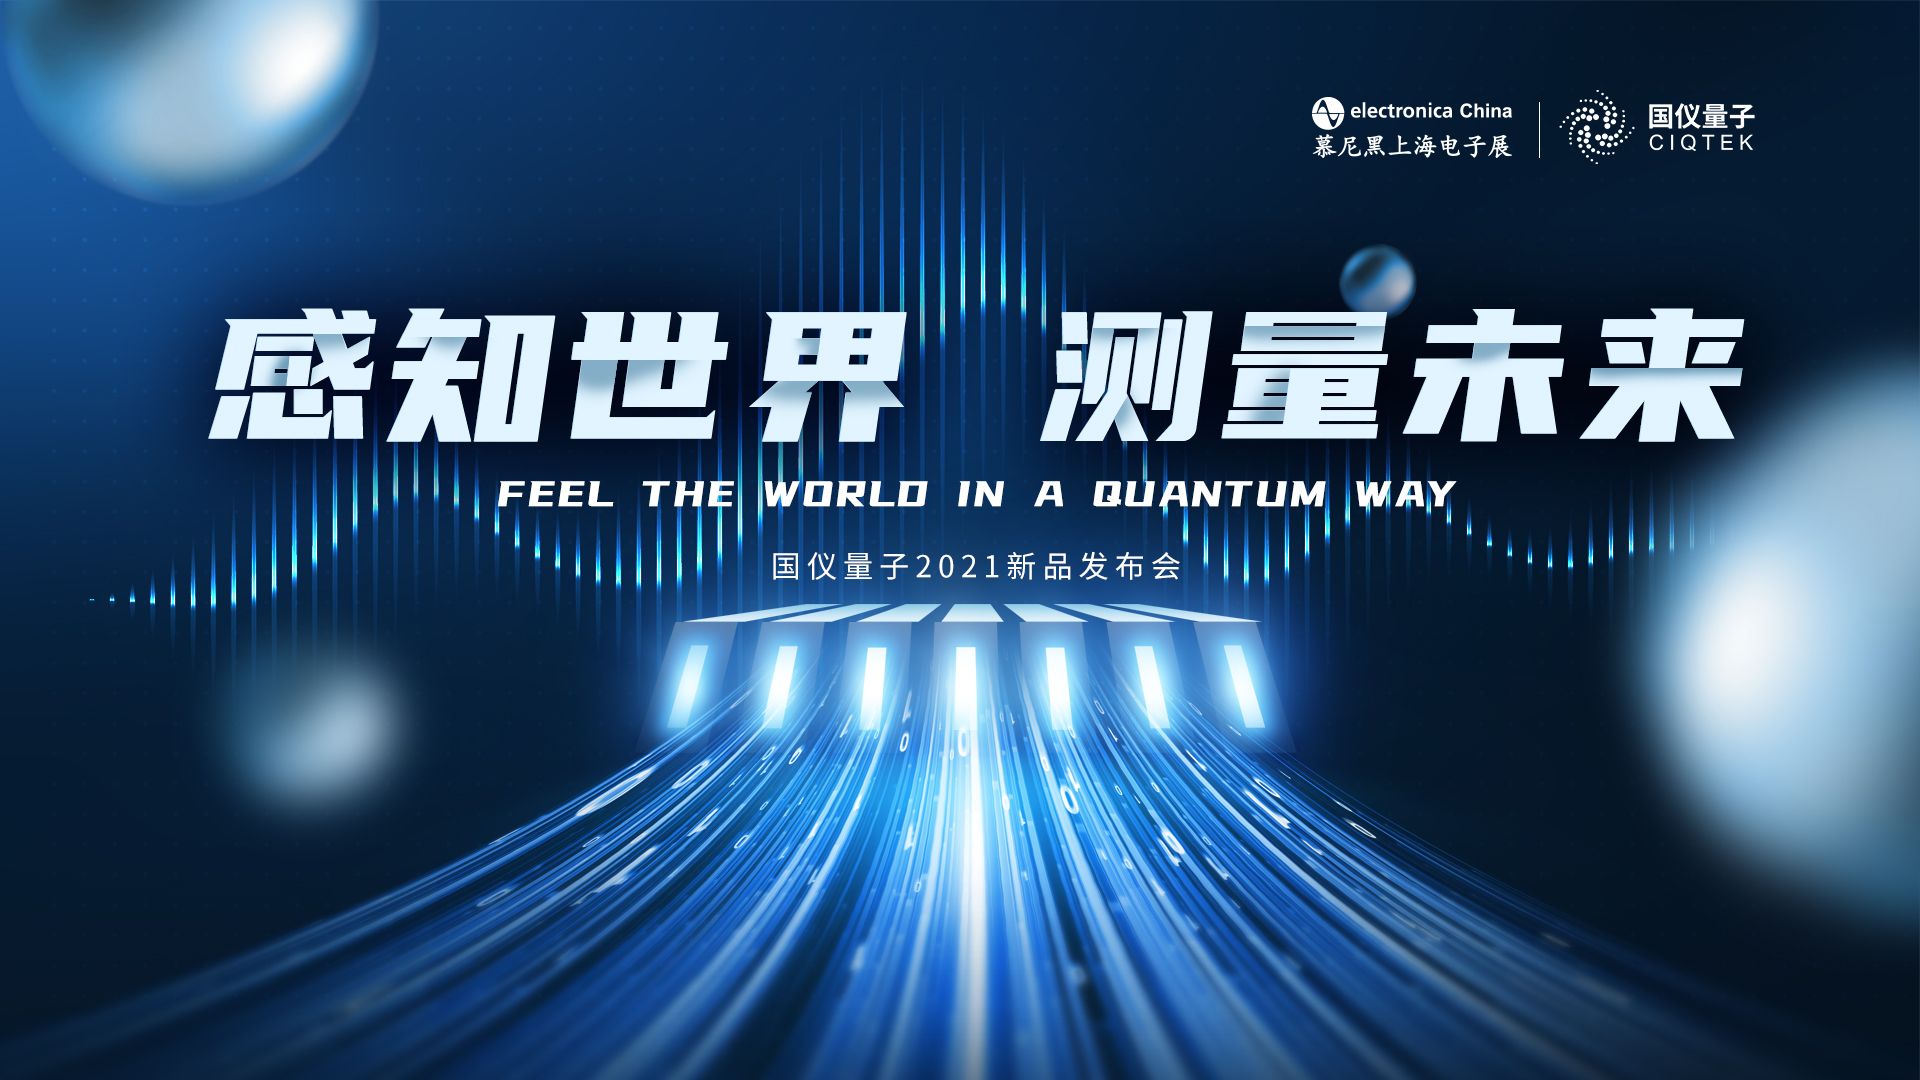 CIQTEK grand launch of new products to enter the electronic test and measurement industry.